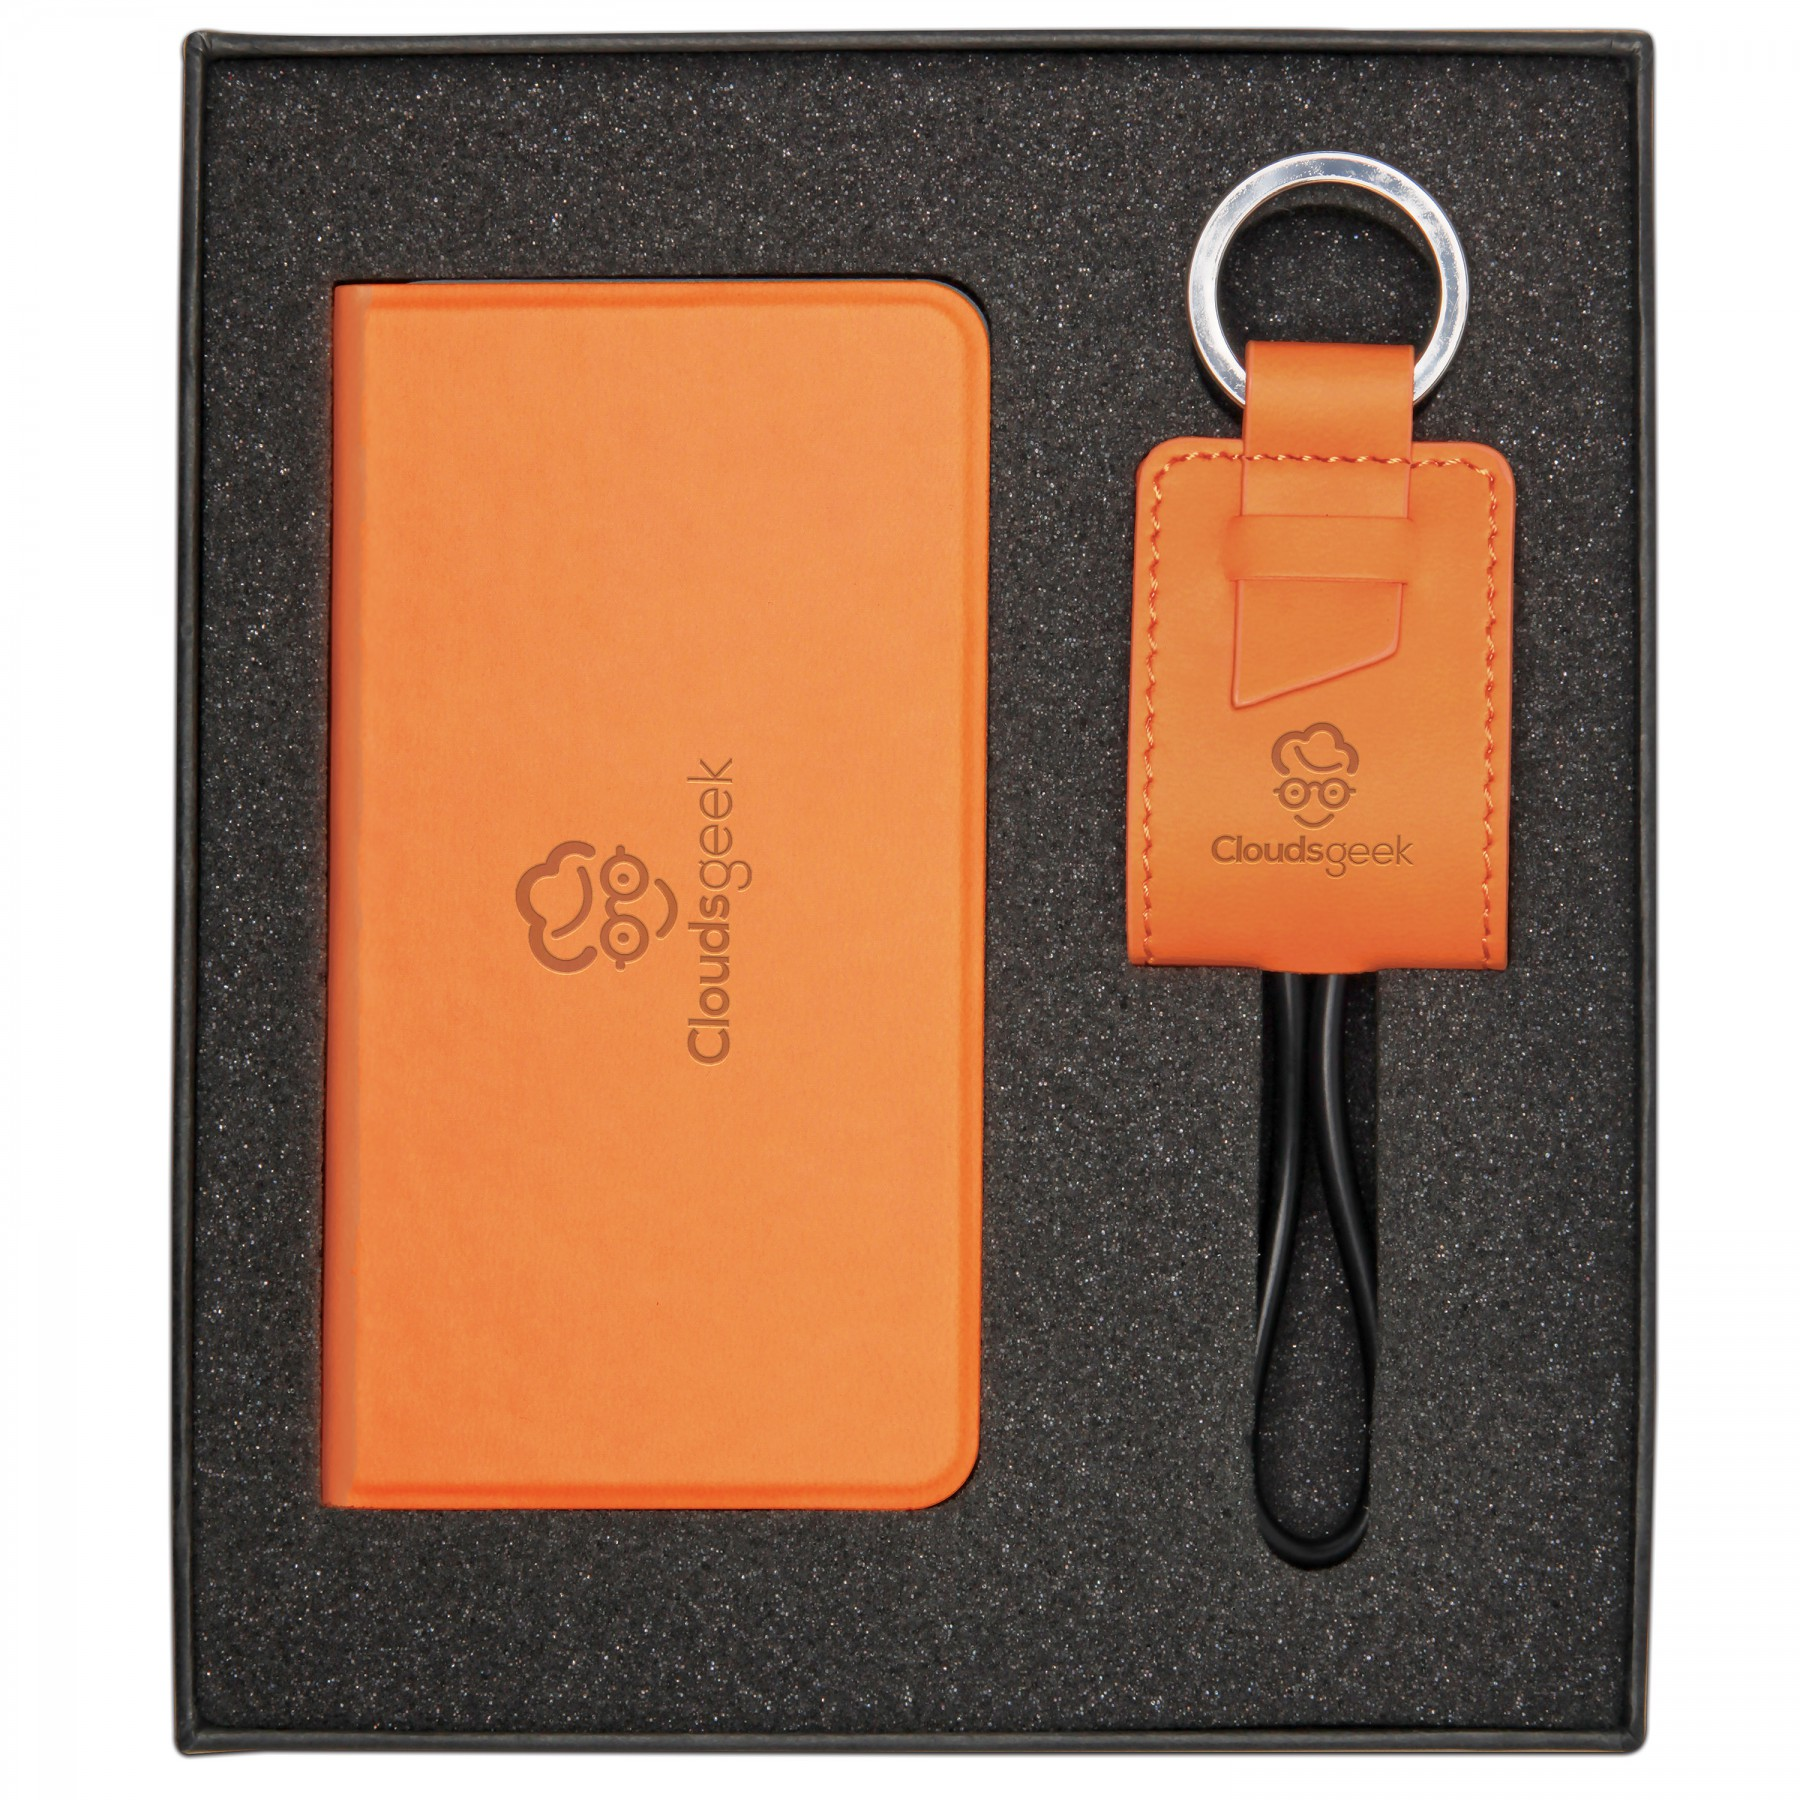 2 Piece Gift Set, GF461, Debossed Logo